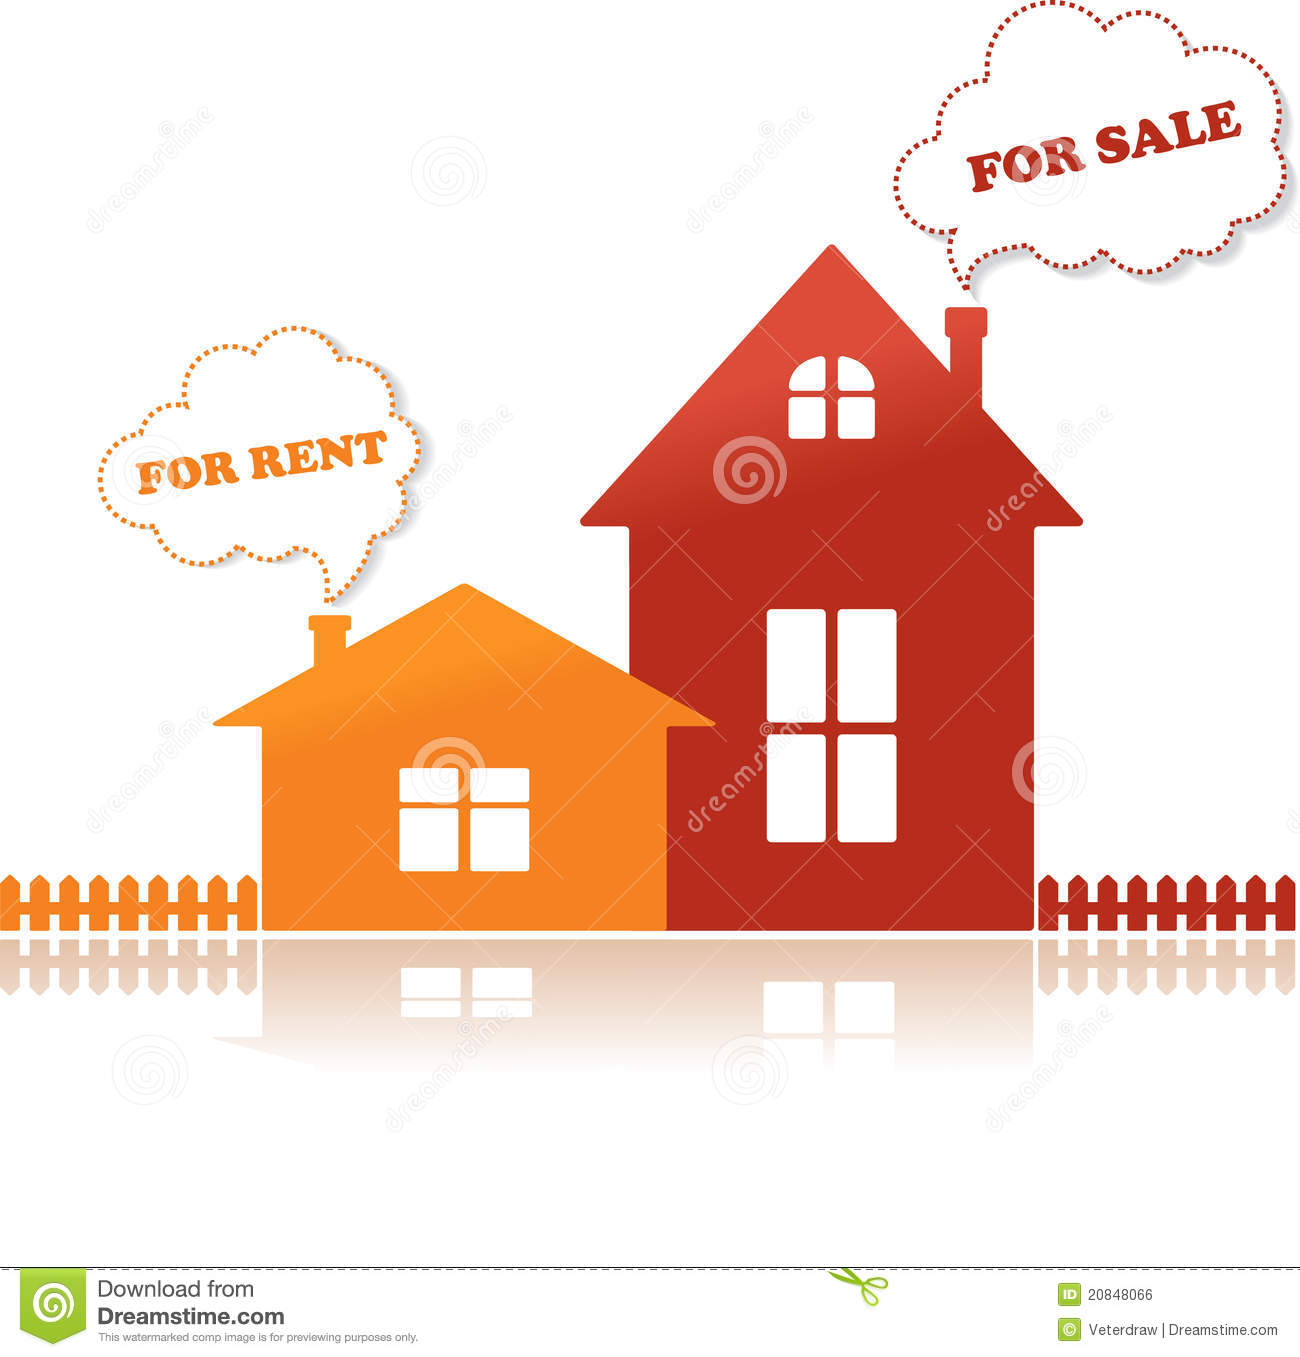 Houses For Sale And For Rent, Vector Illustration Royalty